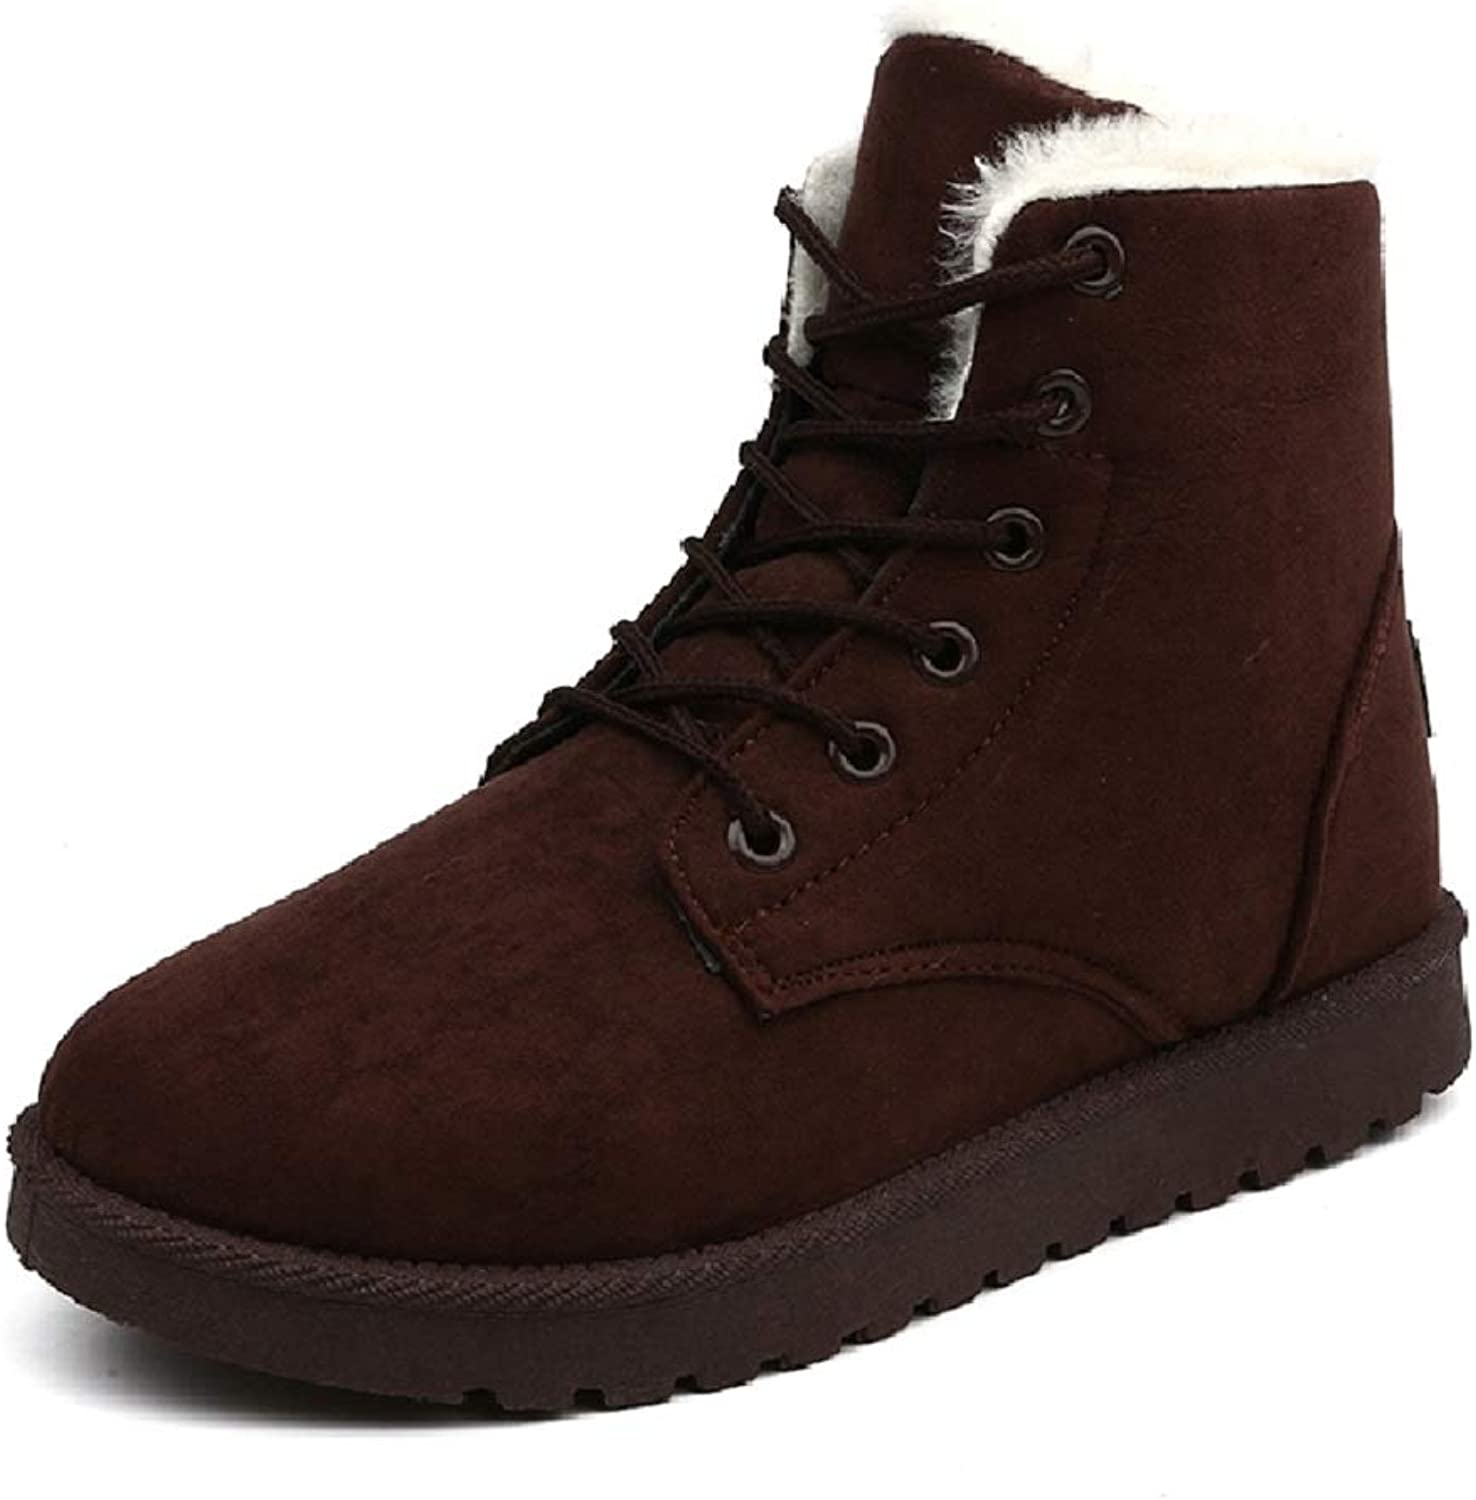 Women's Waterproof Winter Snow Boots New European and American Street Short Boots with Large Size Plus Cotton Warm Women's shoes